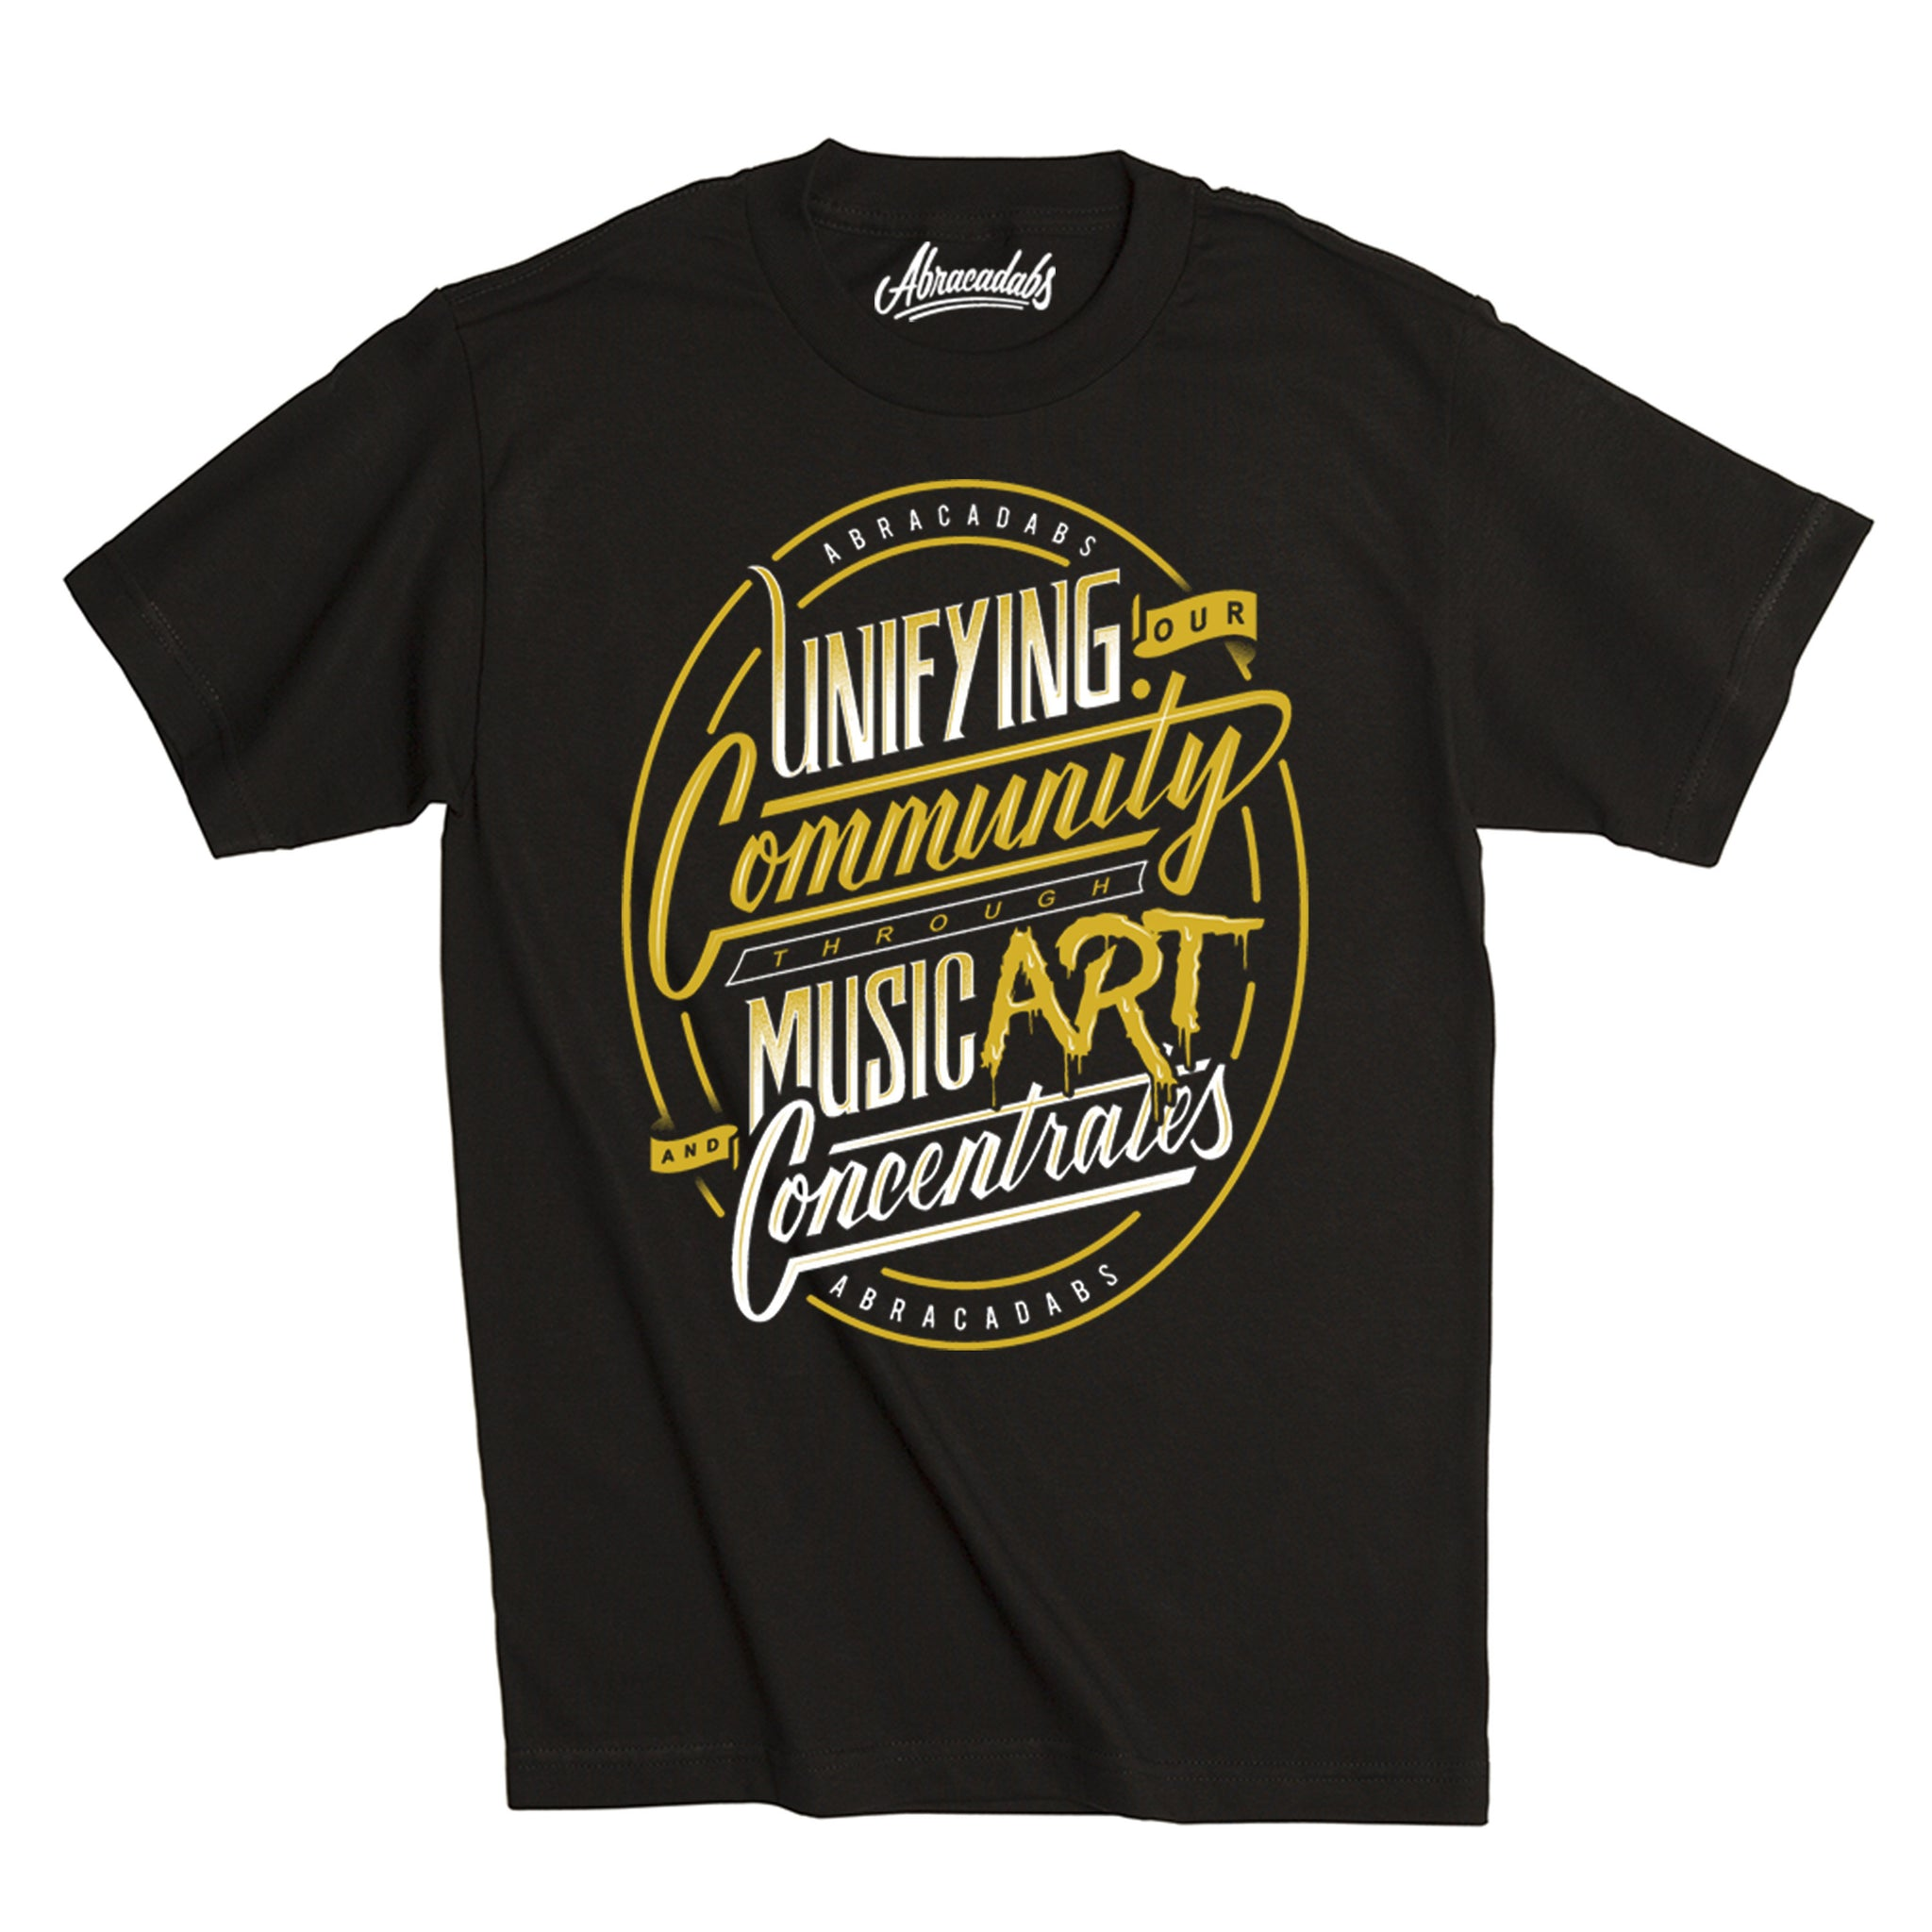 "ABRACADABS ""Unifying Our Community"" T-Shirt"